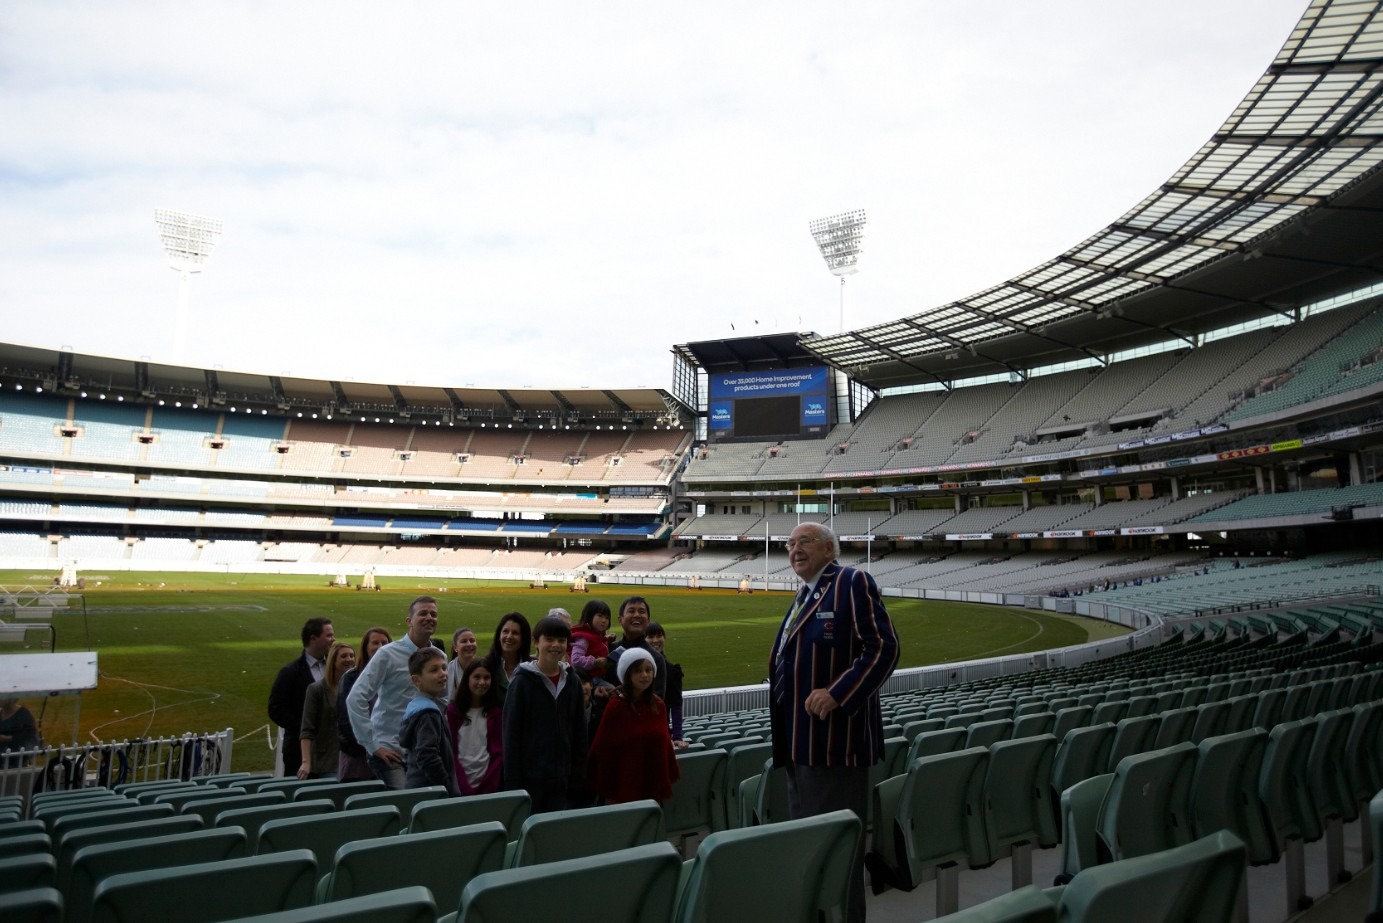 Melbourne Cricket Ground Logo and Images